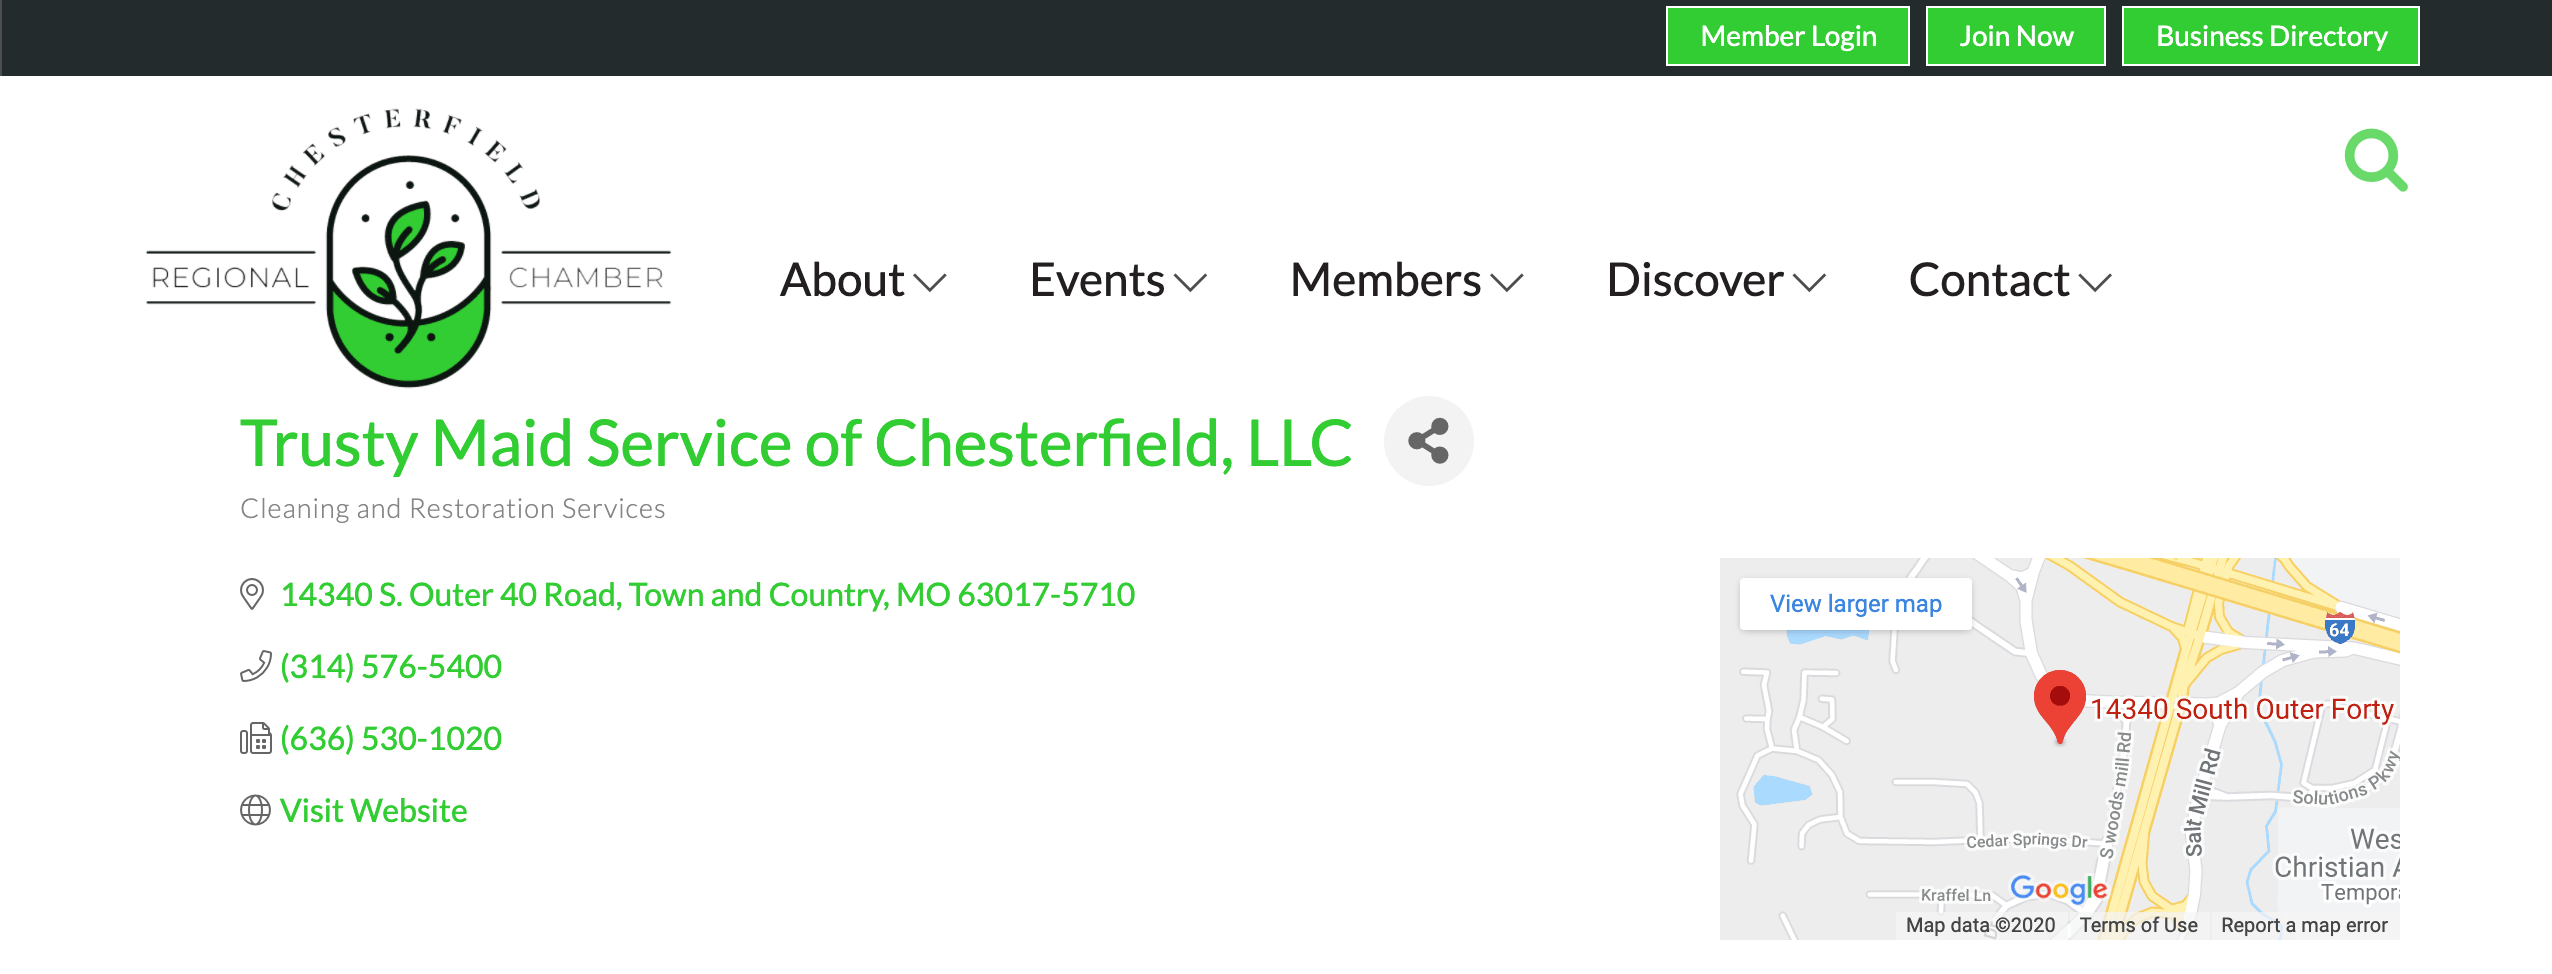 An example of a business listing on a local Chamber of Commerce business directory.